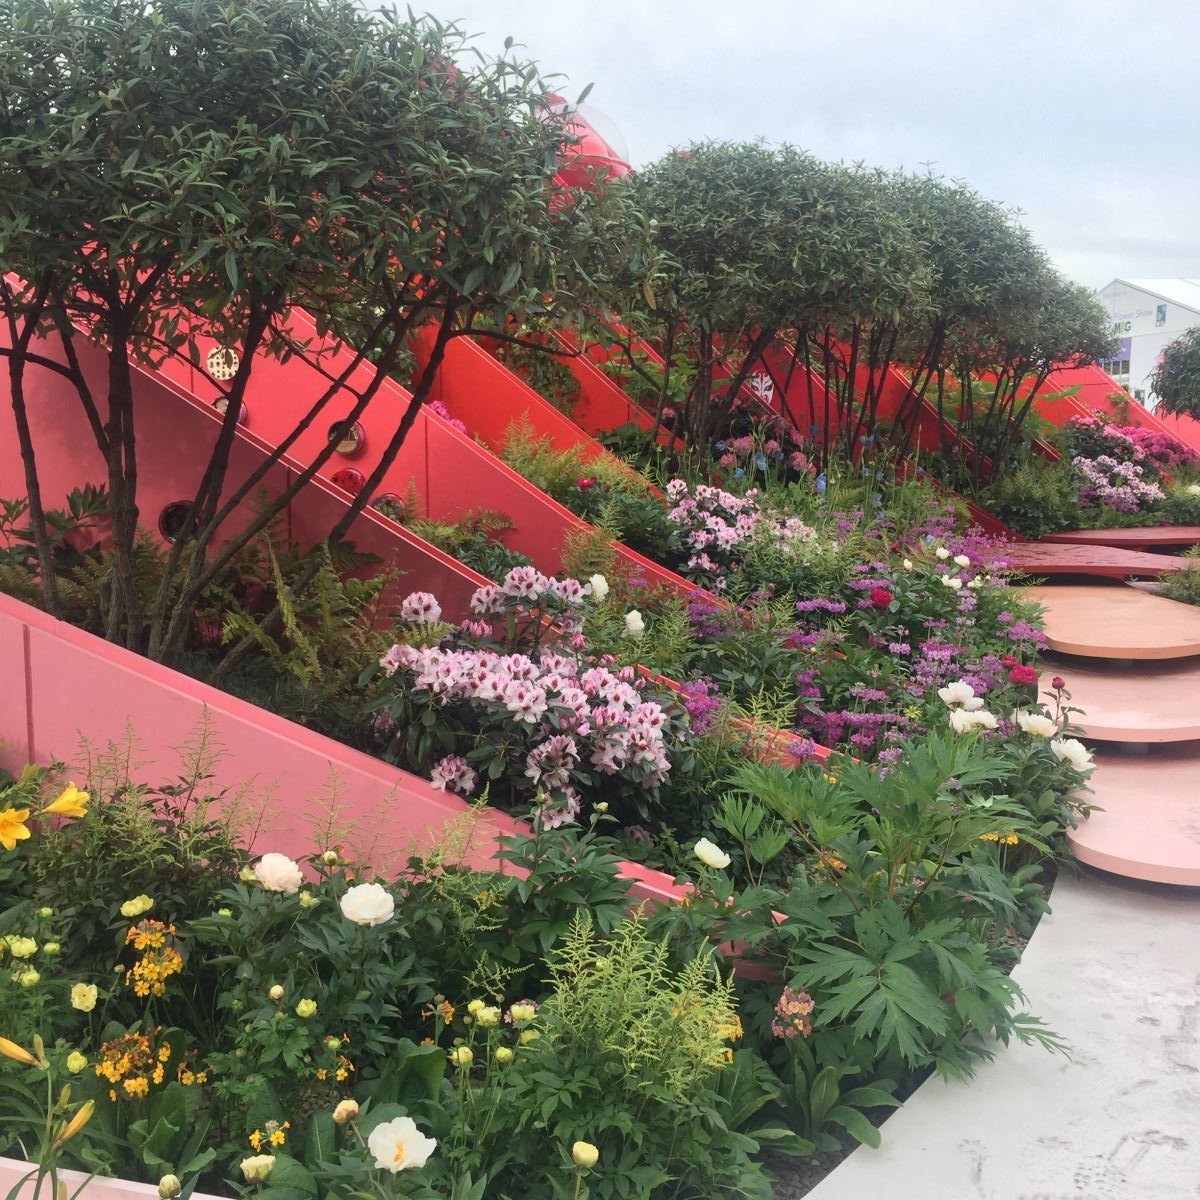 Landscape Design In A Day: RHS Chelsea Flower Show 2017 – Press Day Highlights